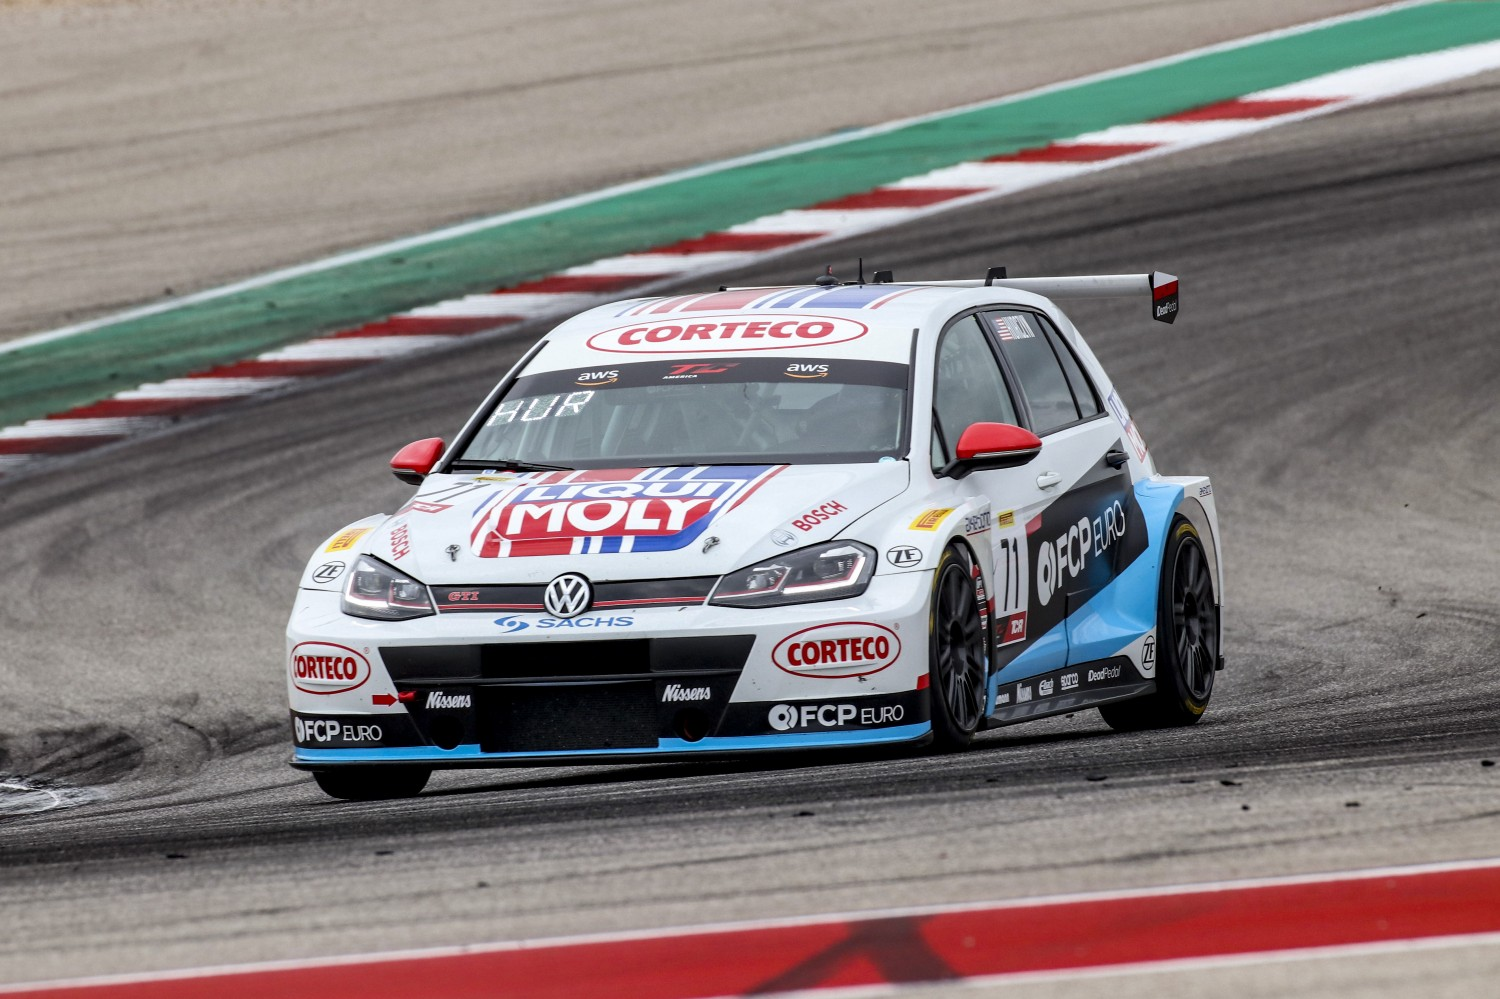 #71 TCR, FCP Euro, Michael Hurczyn, Volkswagen Golf GTI, 2020 SRO Motorsports Group - Circuit of the Americas, Austin TX  |